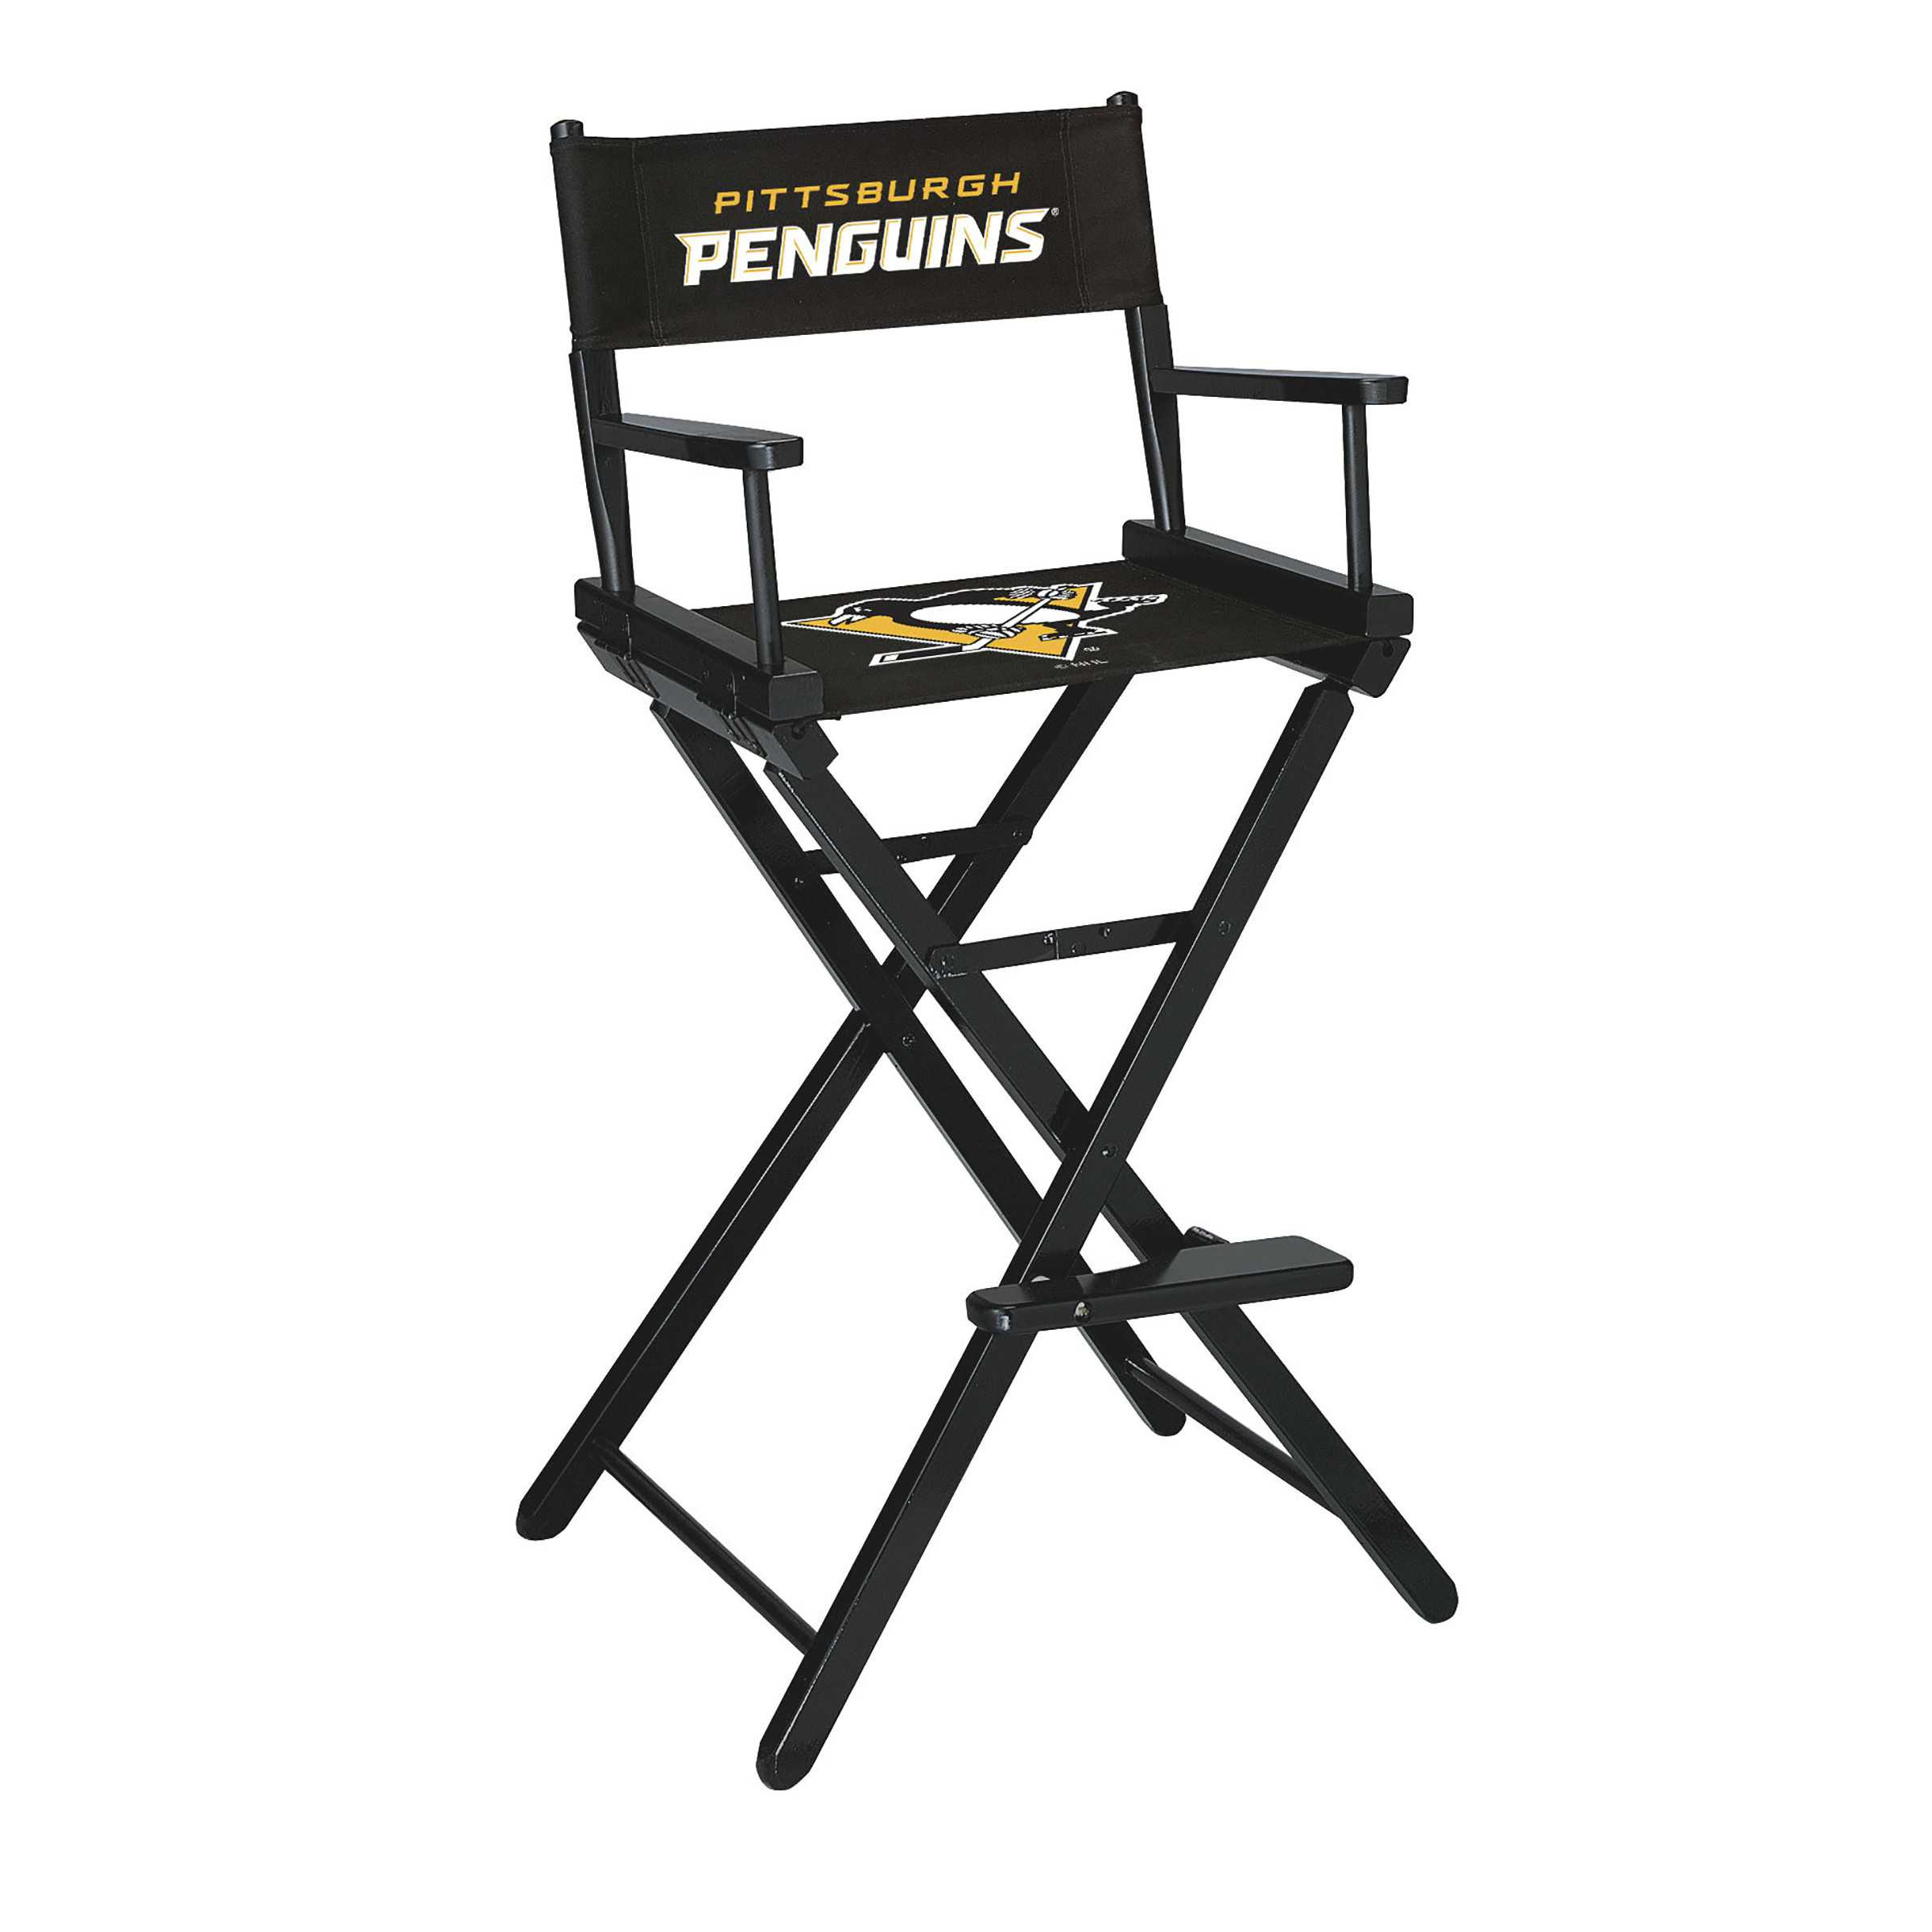 PITTSBURGH PENGUINS BAR HEIGHT DIRECTORS CHAIR